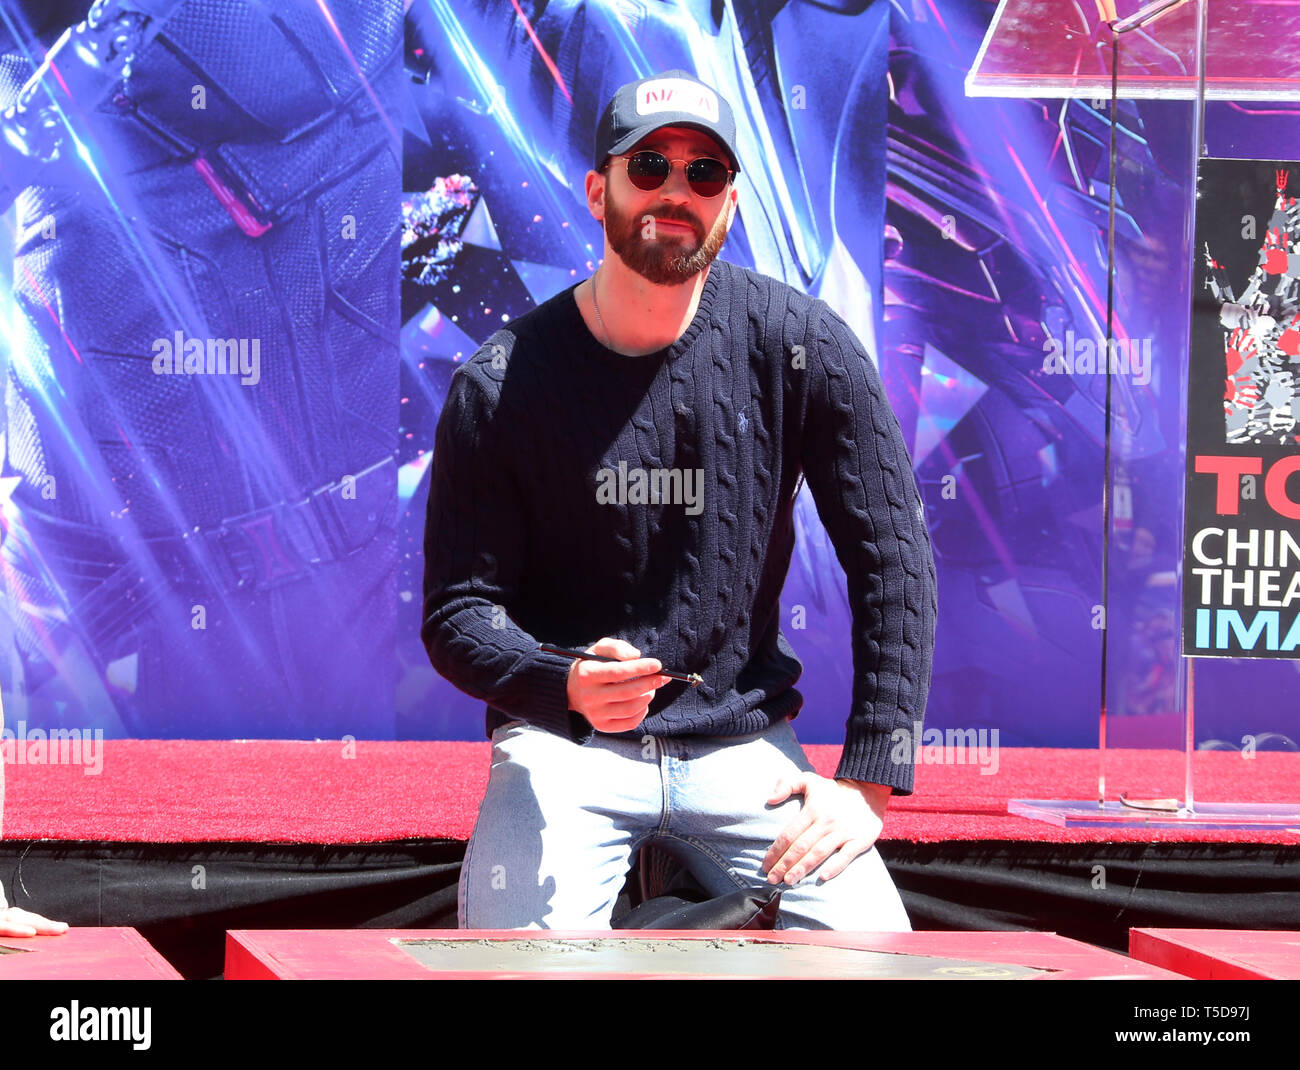 April 23, 2019 - Hollywood, CA, U.S. - 23 April 2019 - Hollywood, California - Chris Evans. Marvel Studios' ''Avengers: Endgame'' Cast Place Their Hand Prints In Cement held at TCL Chinese Theatre. Photo Credit: Faye Sadou/AdMedia (Credit Image: © Faye Sadou/AdMedia via ZUMA Wire) Stock Photo